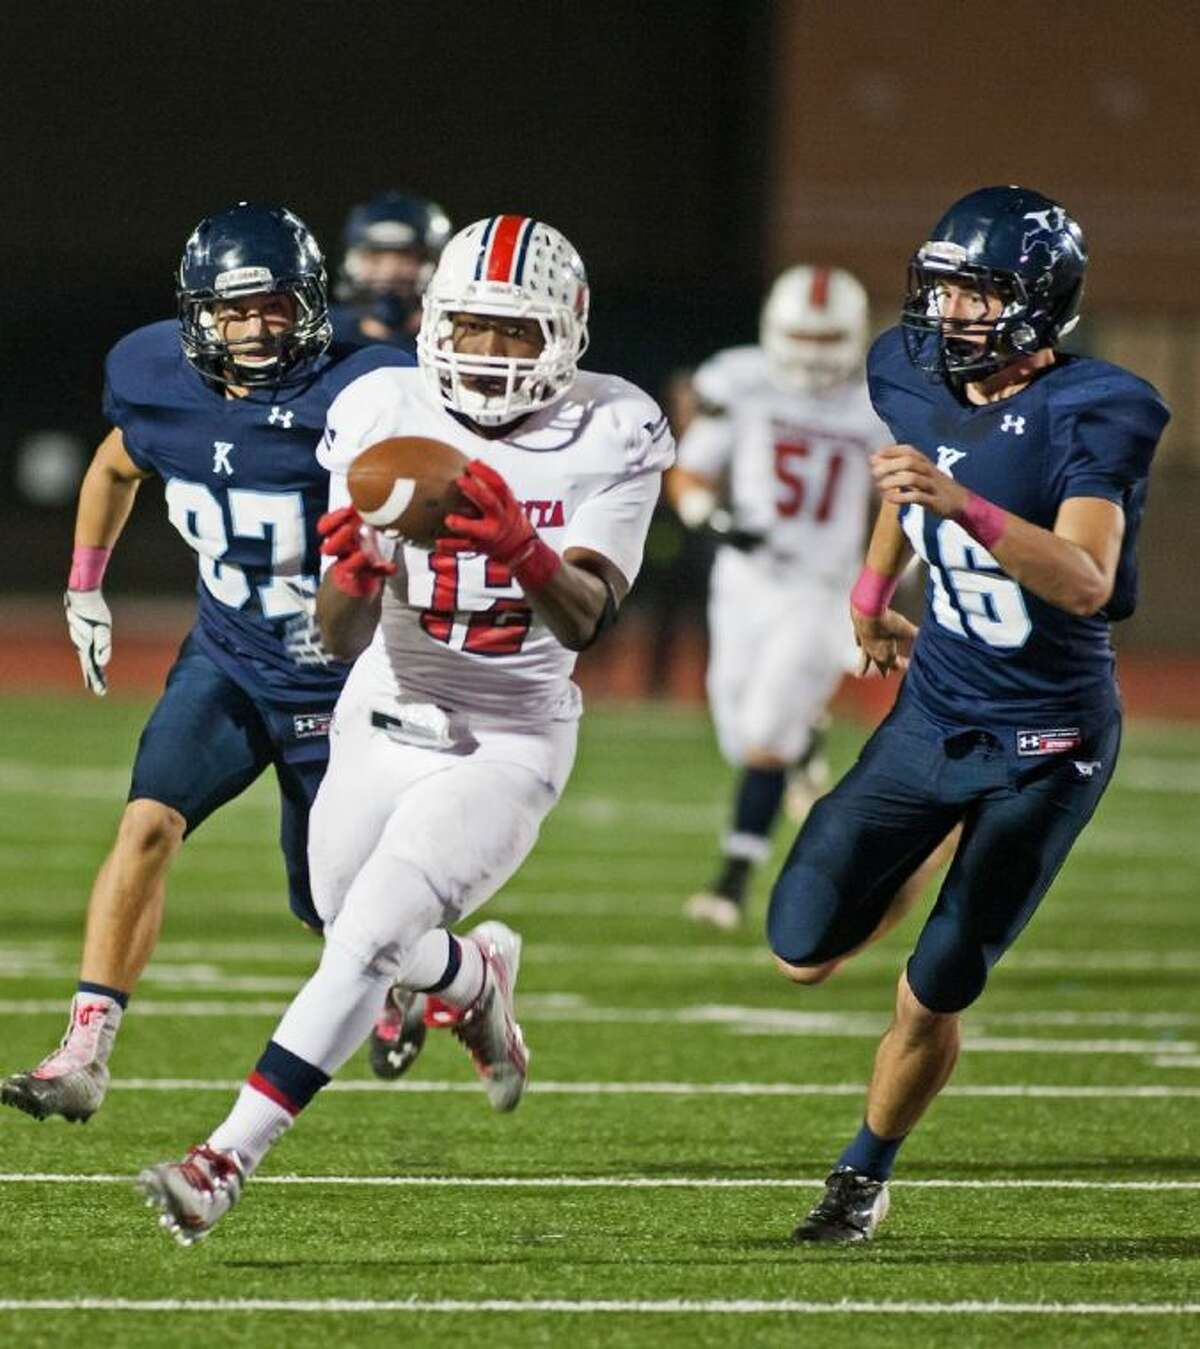 Atascocita's Jemarcus Jones rushes in for the touchdown in the first half against Kingwood.